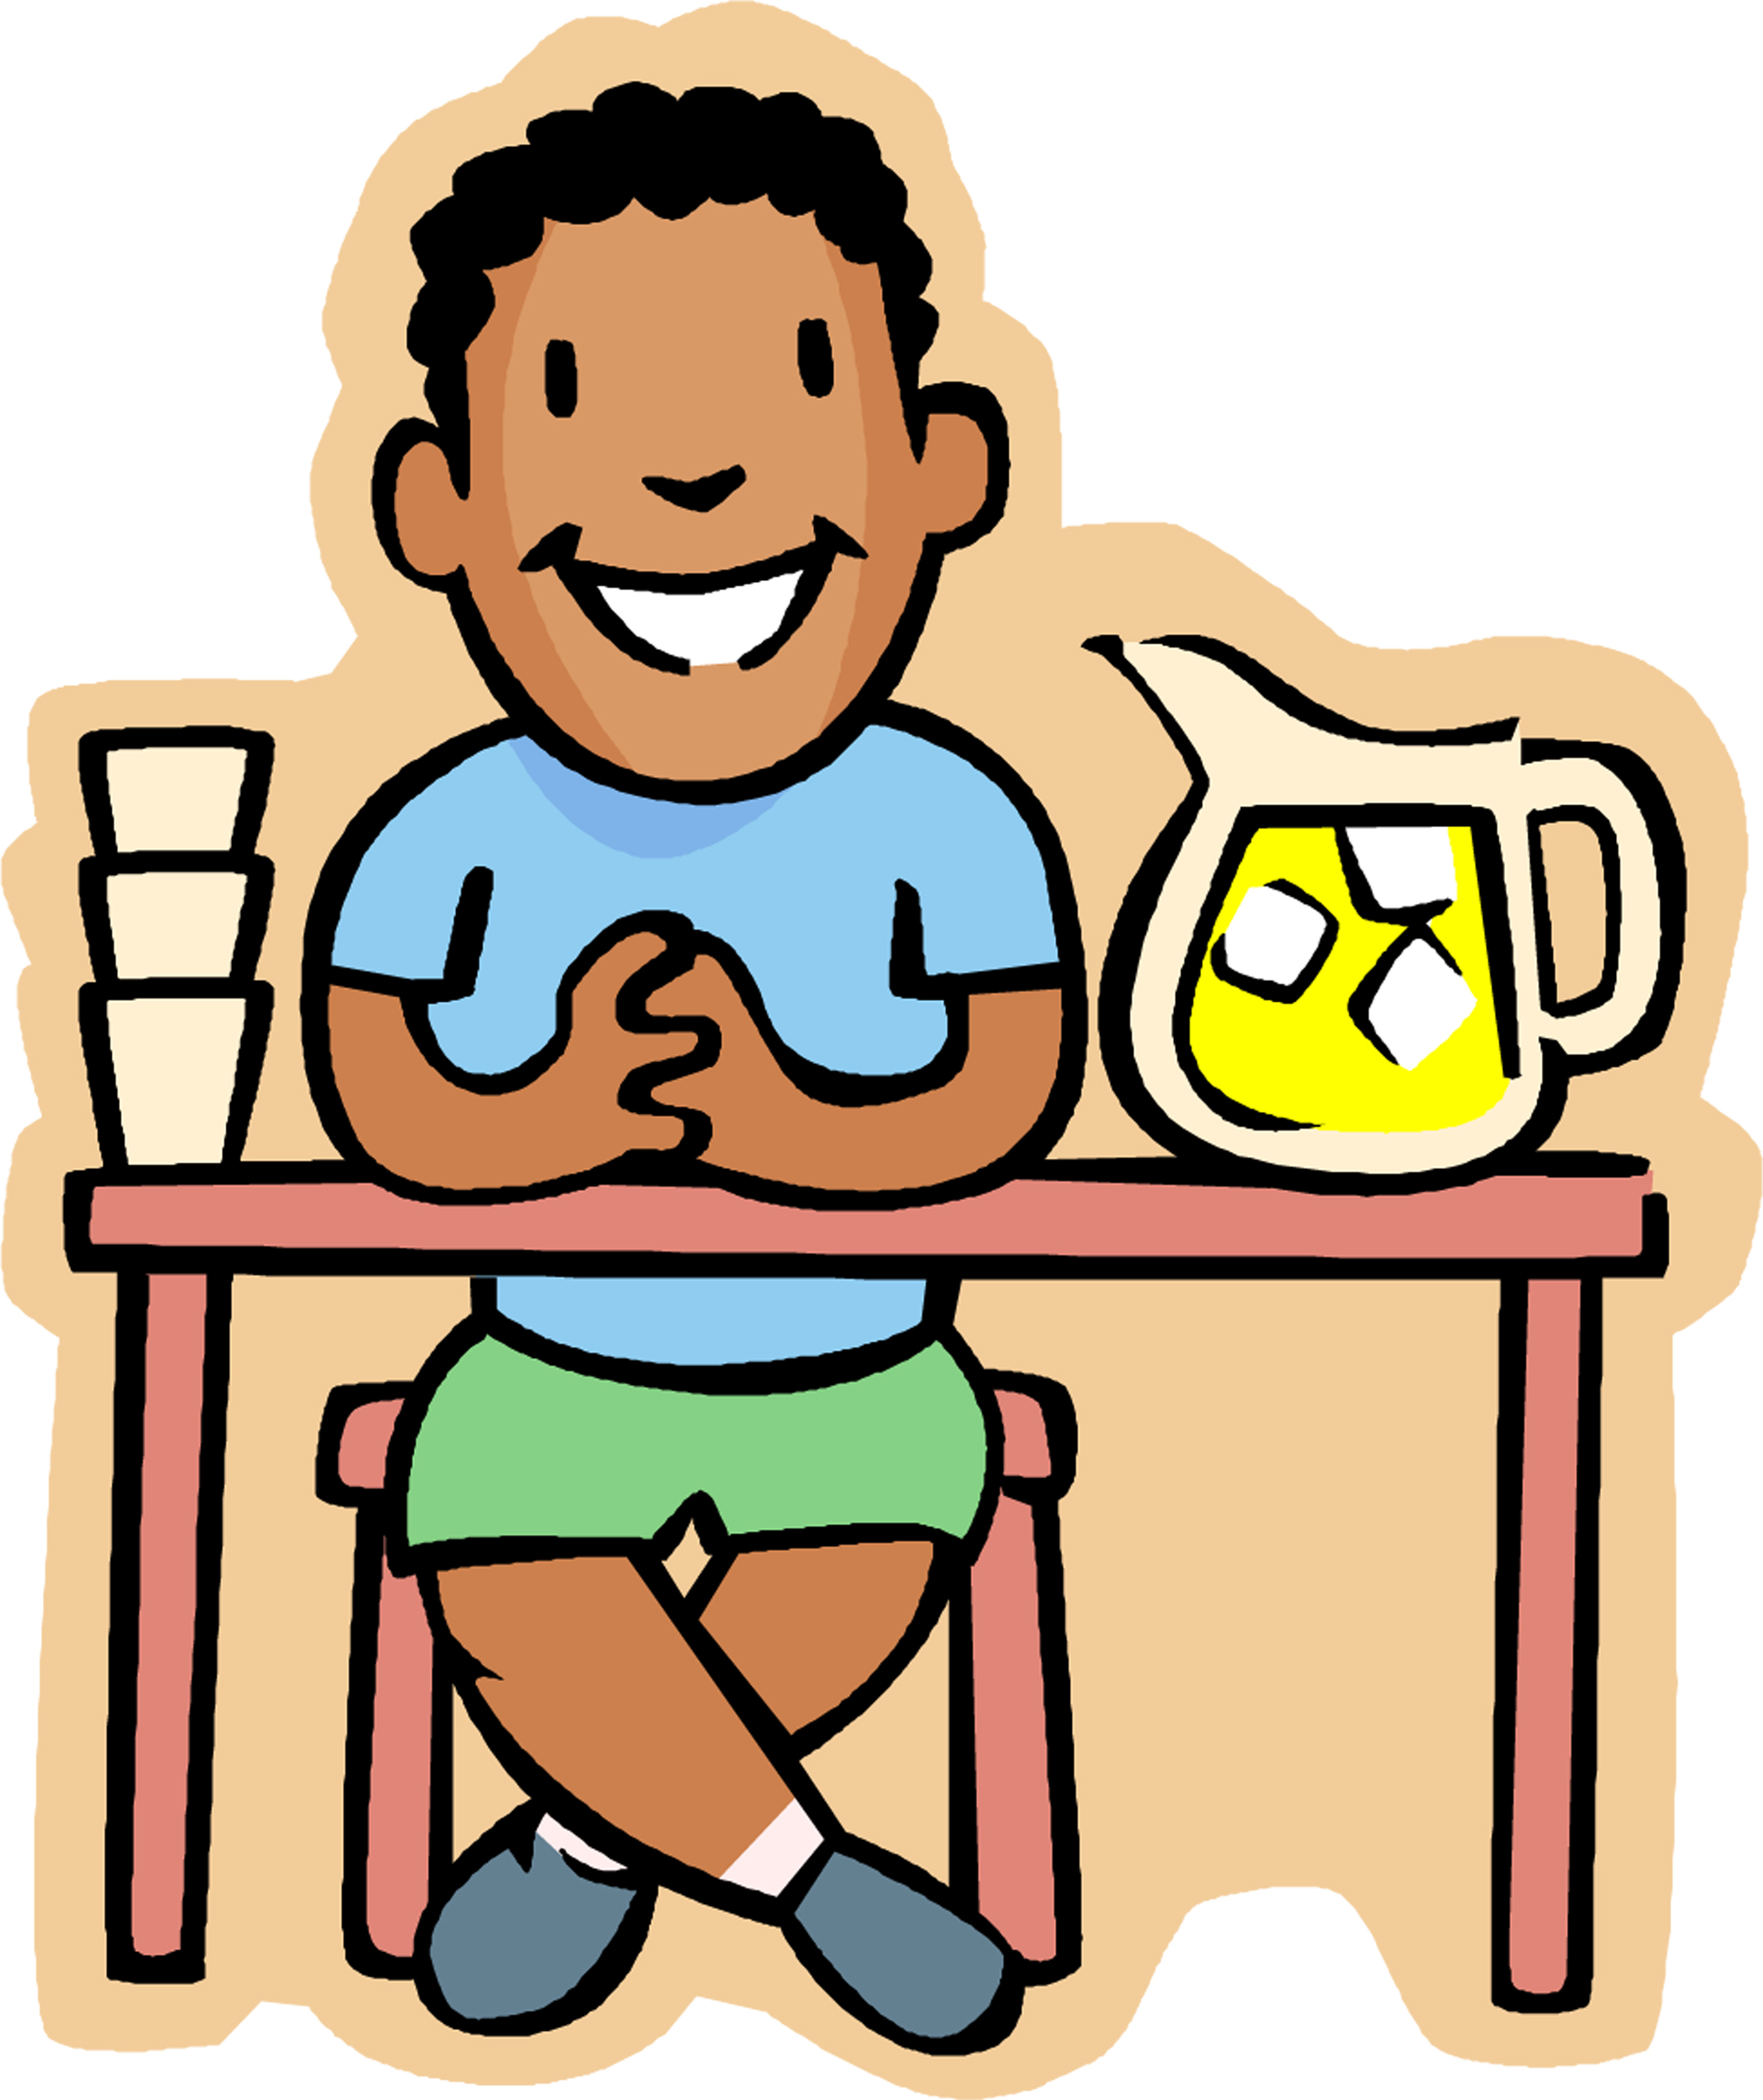 Behave in school clipart image stock Boy Behaving Cliparts - Making-The-Web.com image stock